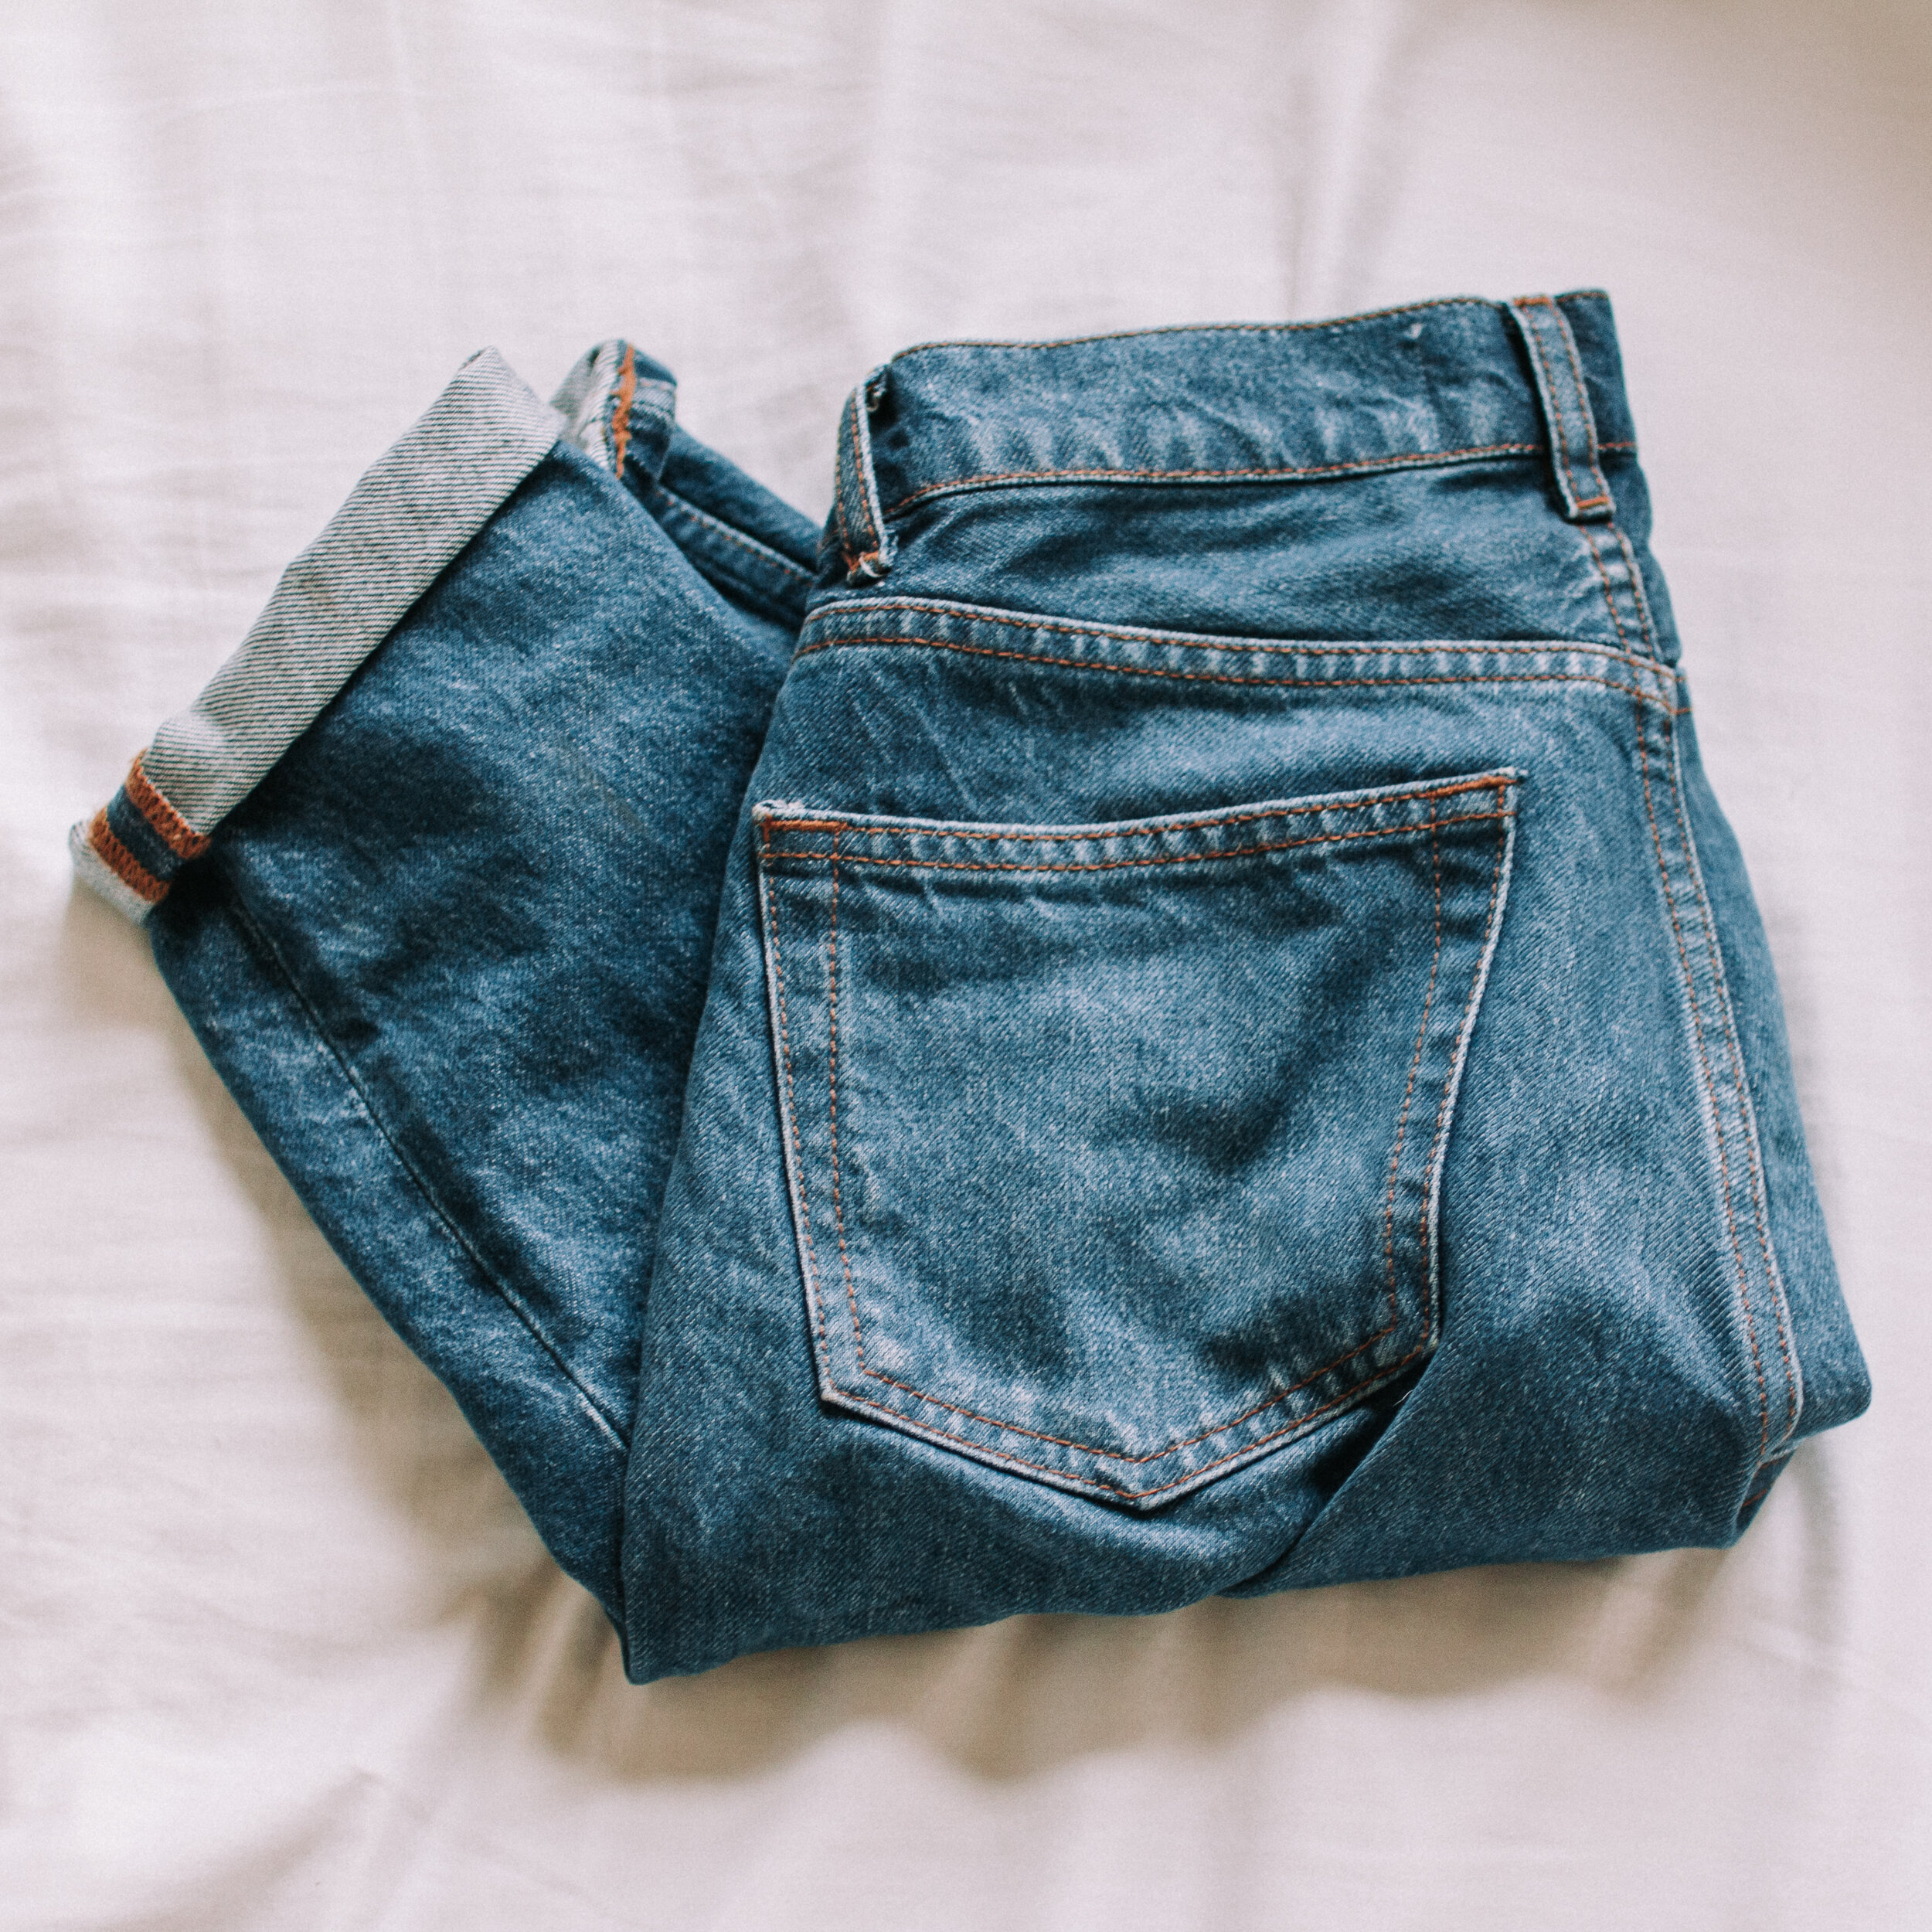 Everlane 90s cheeky straight jeans